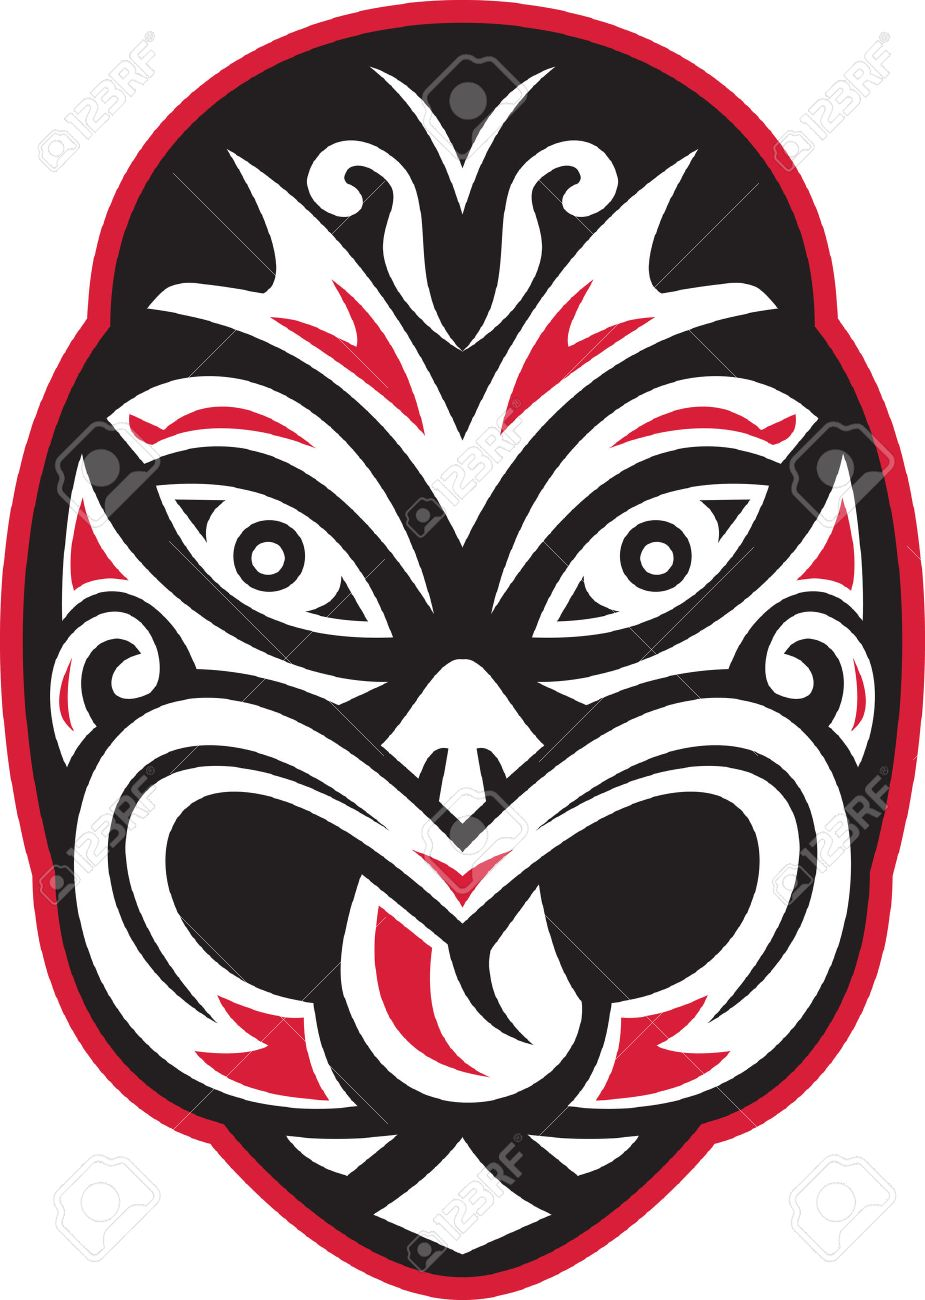 Illustration of a maori tiki moko tattoo mask facing front on isolated white background done in retro style. - 36833893